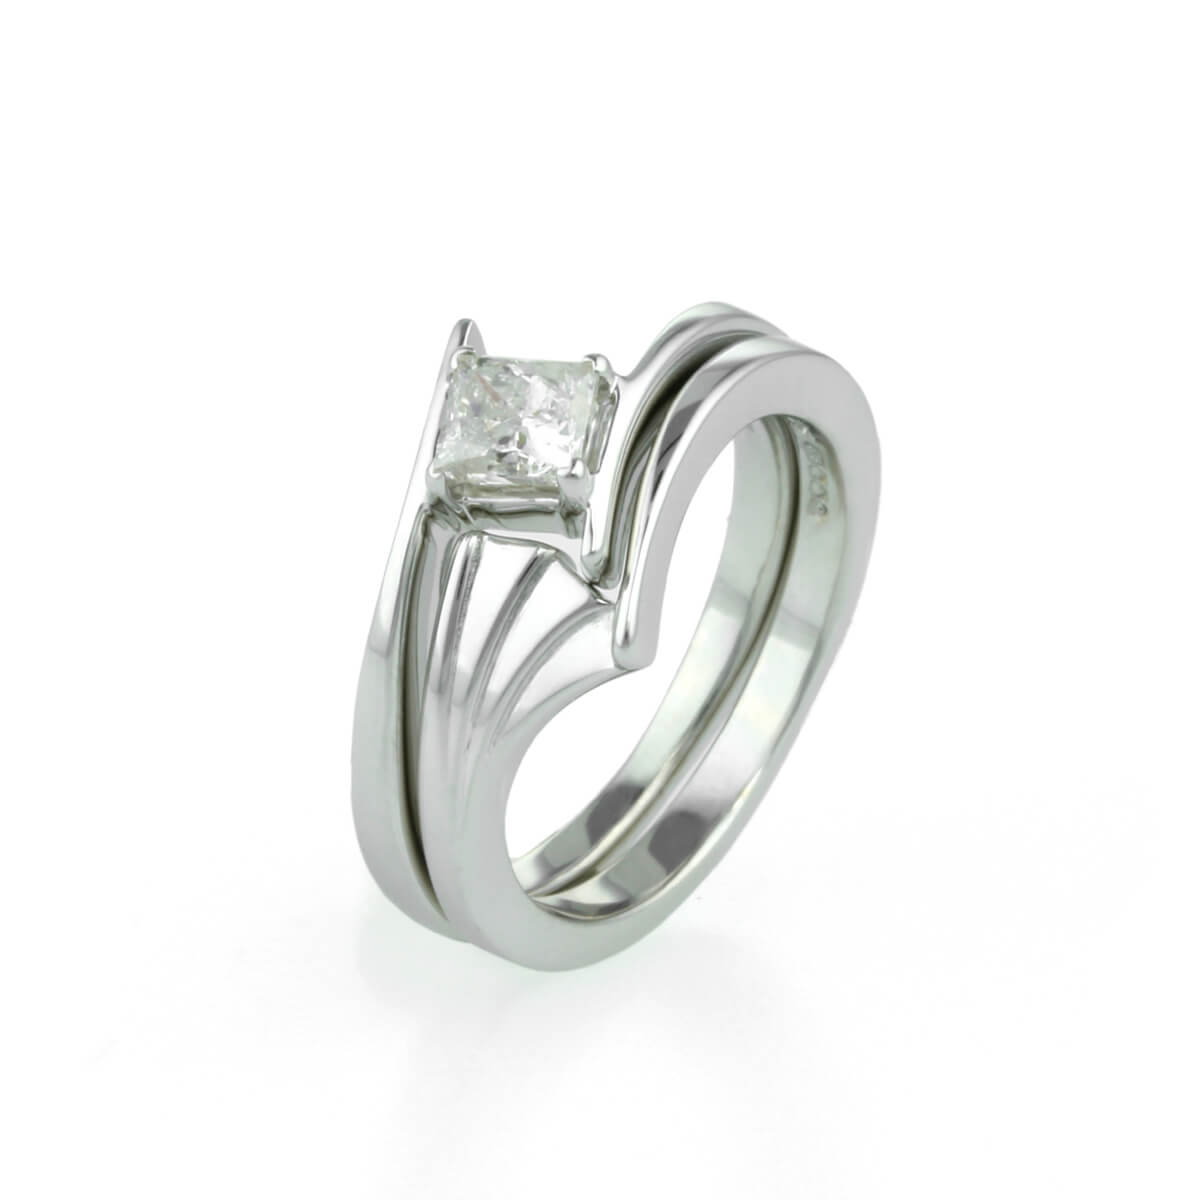 Ladies Art Deco Inspired Wedding Ring